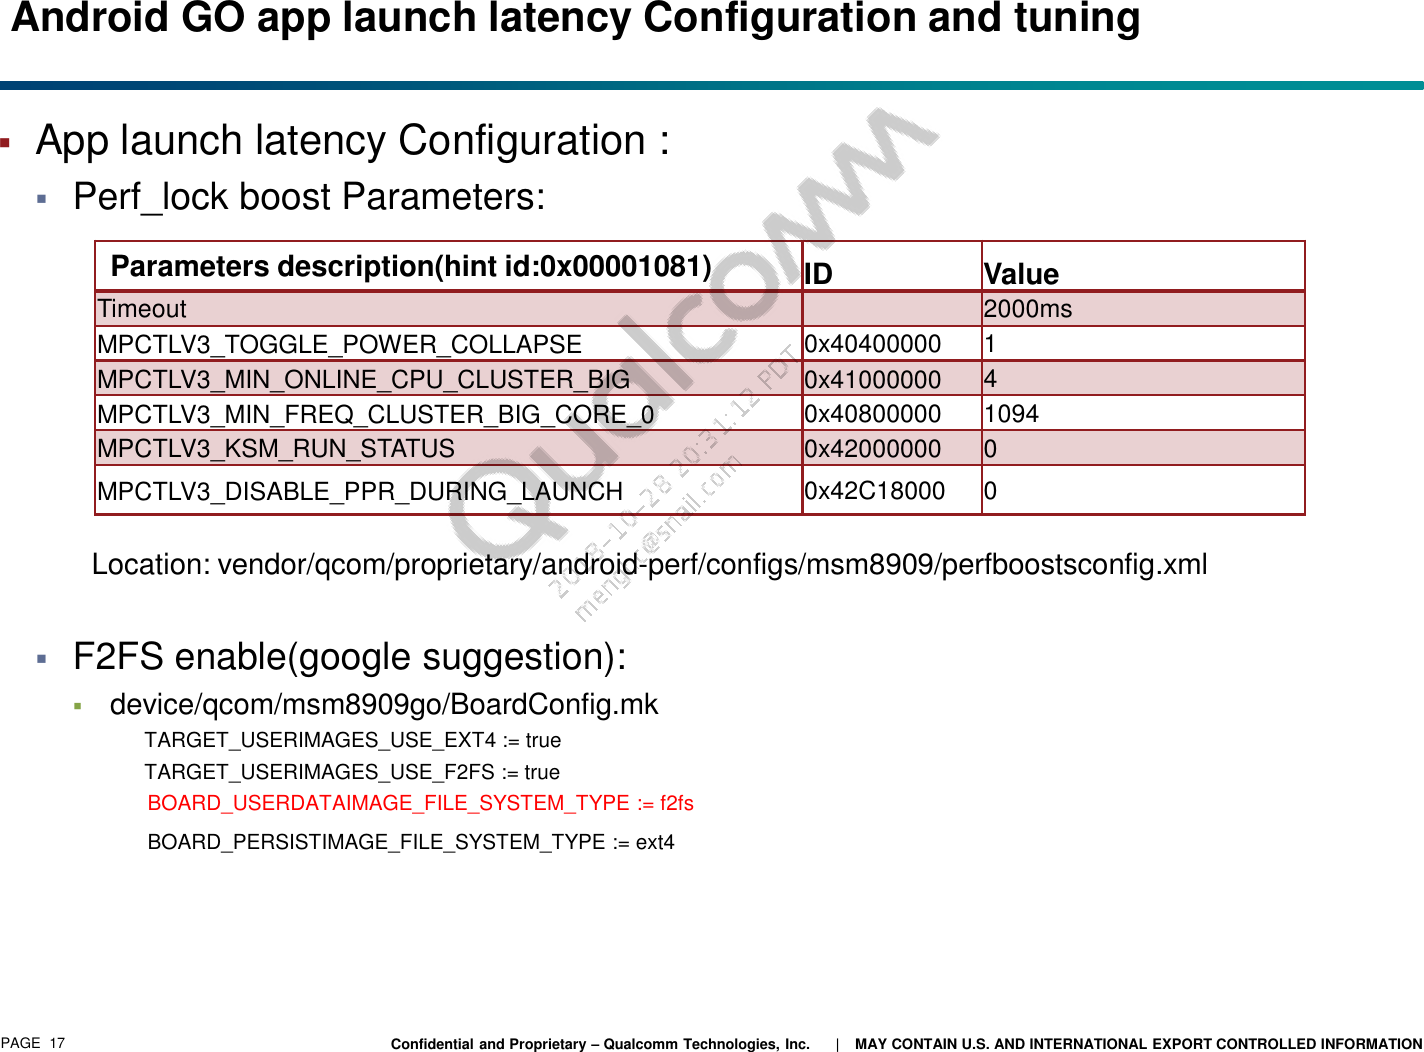 Qualcomm Android GO Performance Tuning Guide Kba 180720005030 1